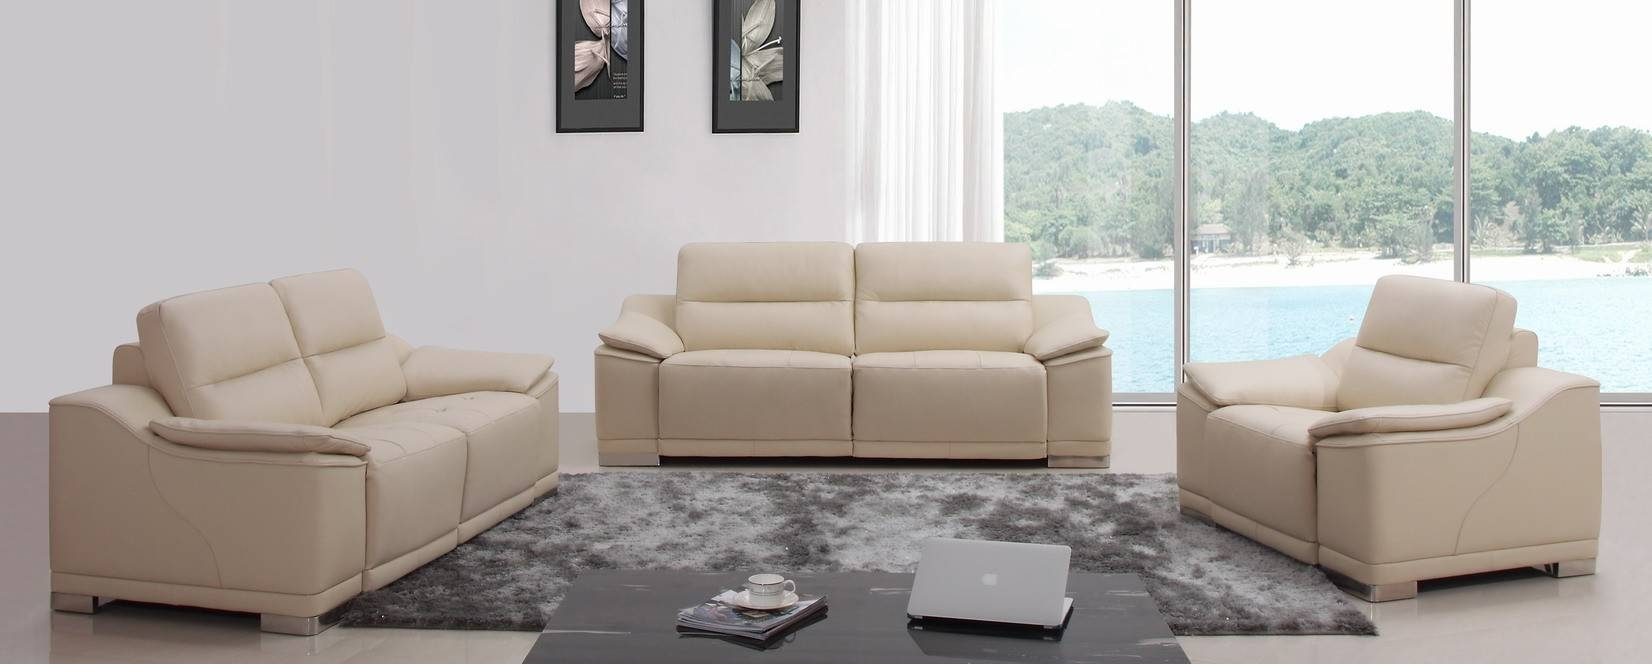 Divani Casa Serenella Modern Beige Leather Sofa Set throughout Beige Leather Couches (Image 3 of 15)